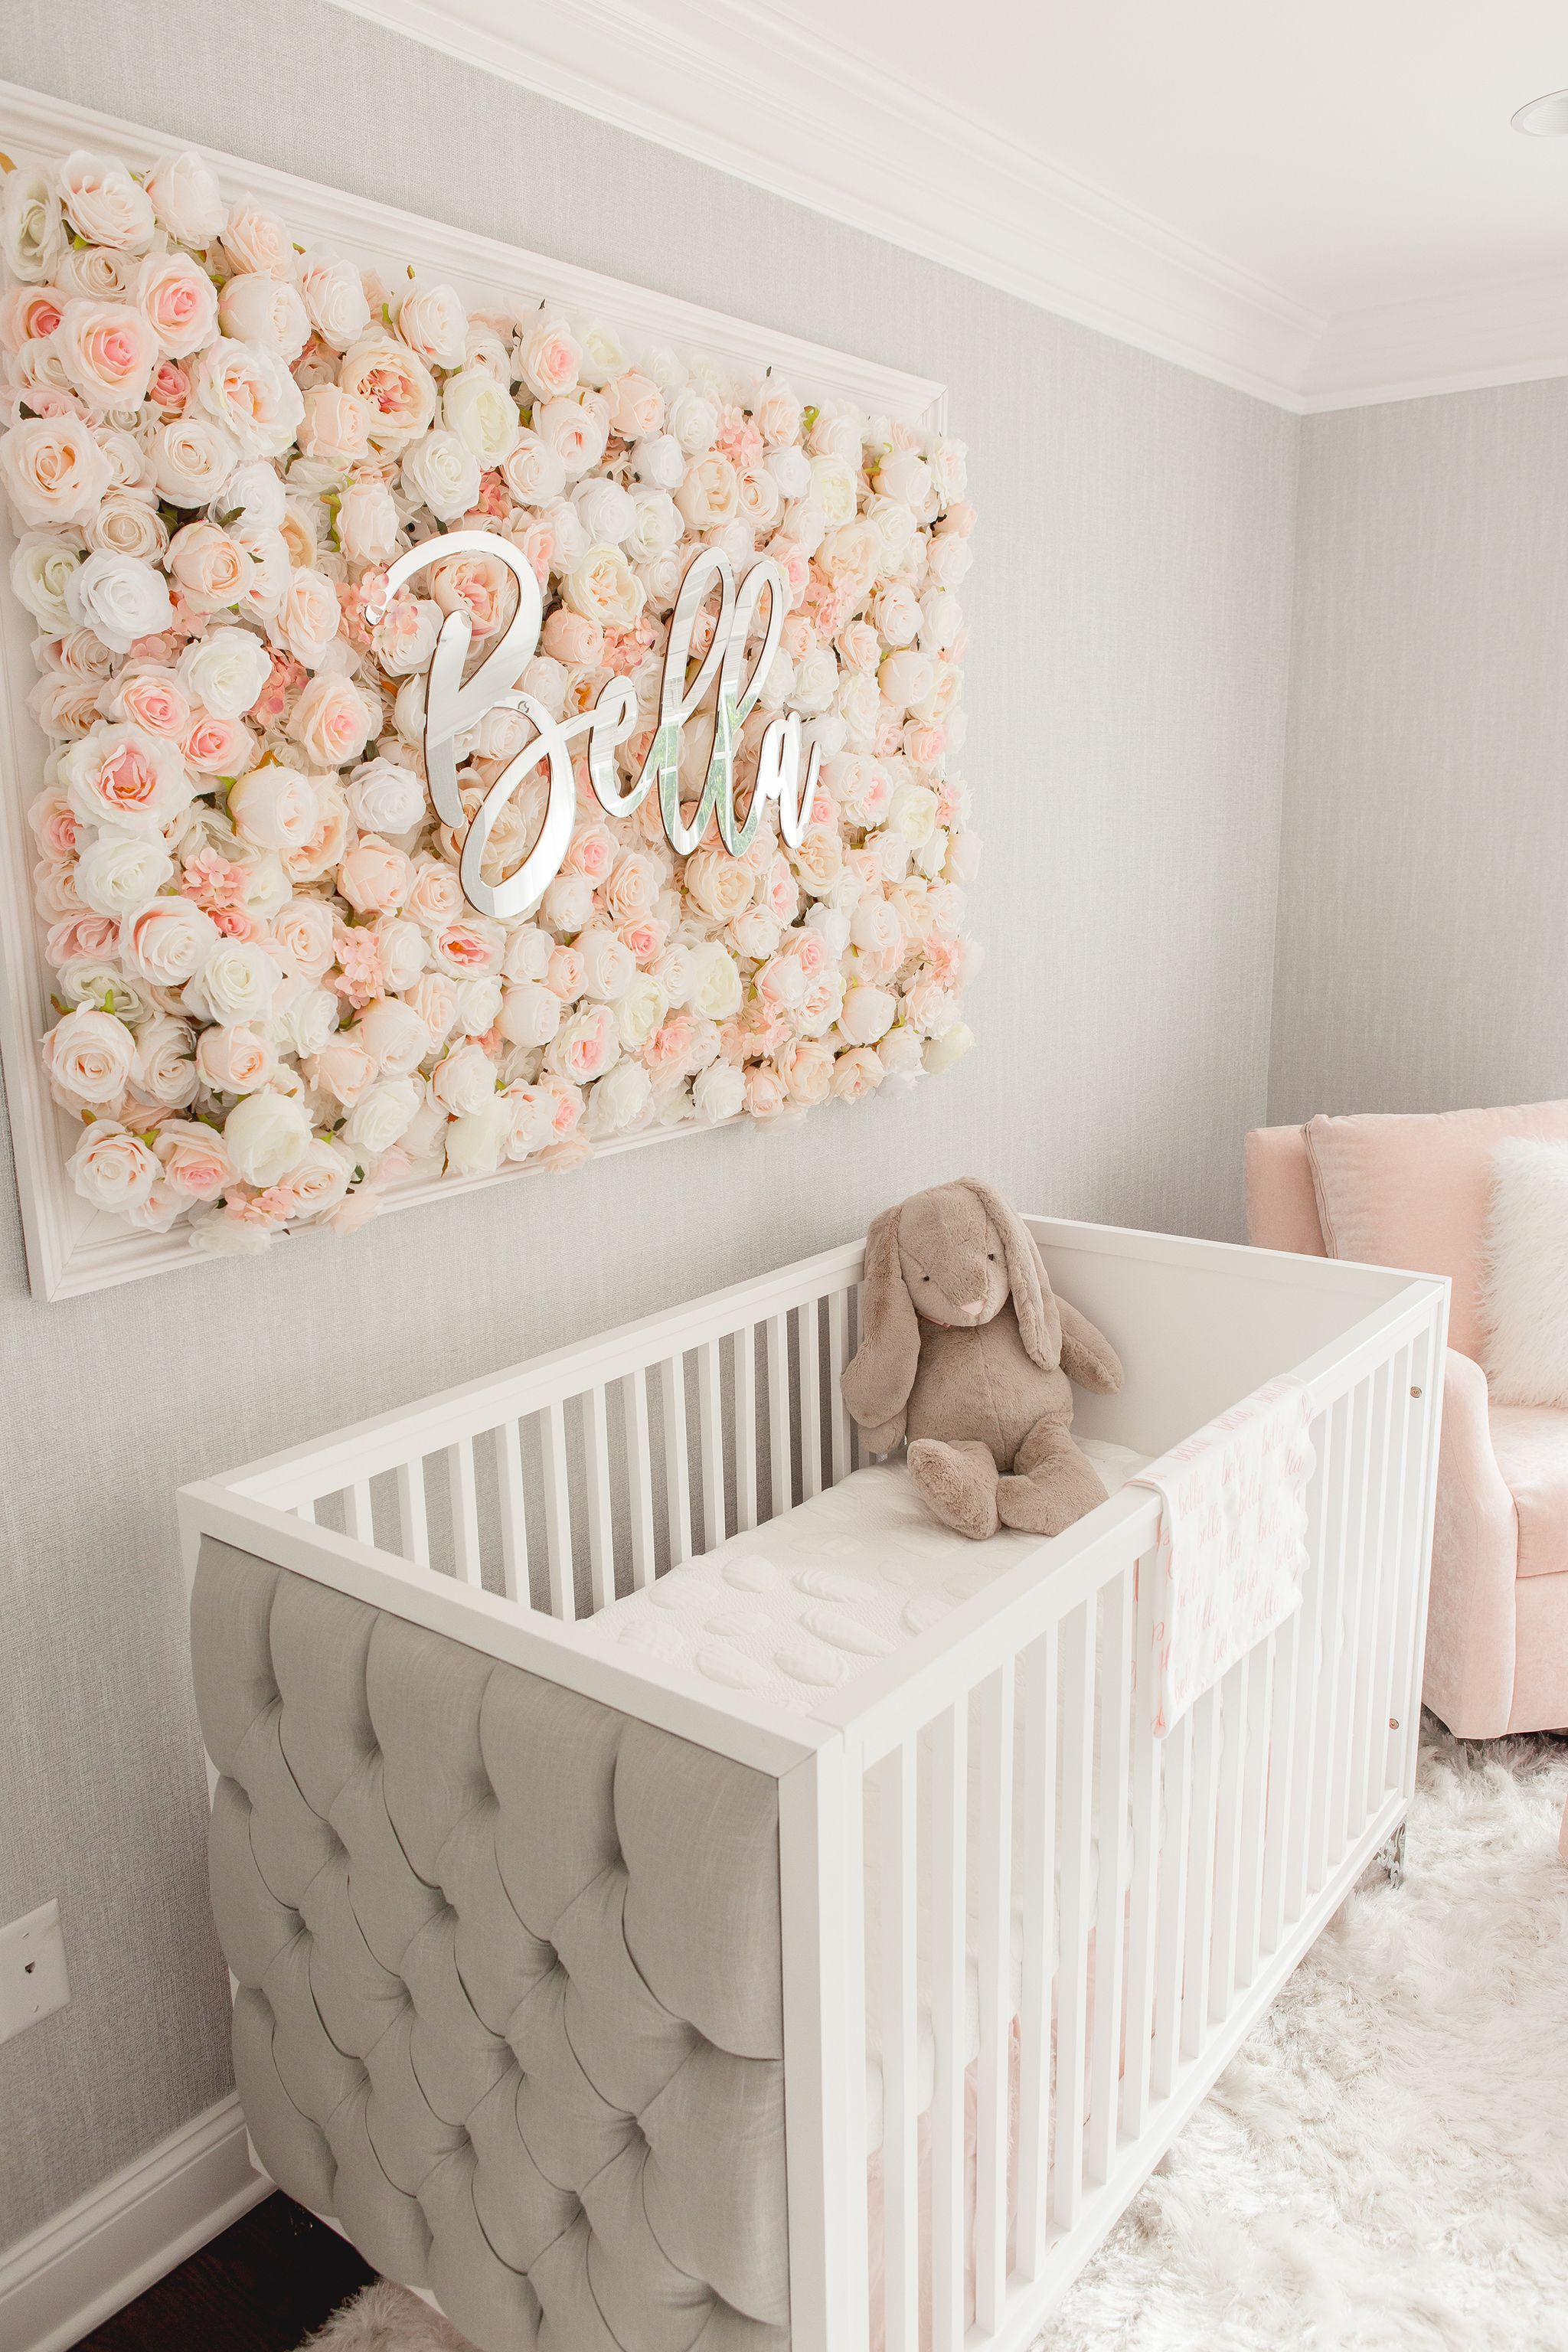 Guess Which Celebrity Nursery Inspired This Gorgeous Space - Project Nursery | Girl Nursery Room, Baby Nursery Inspiration, Baby Girl Nursery Room